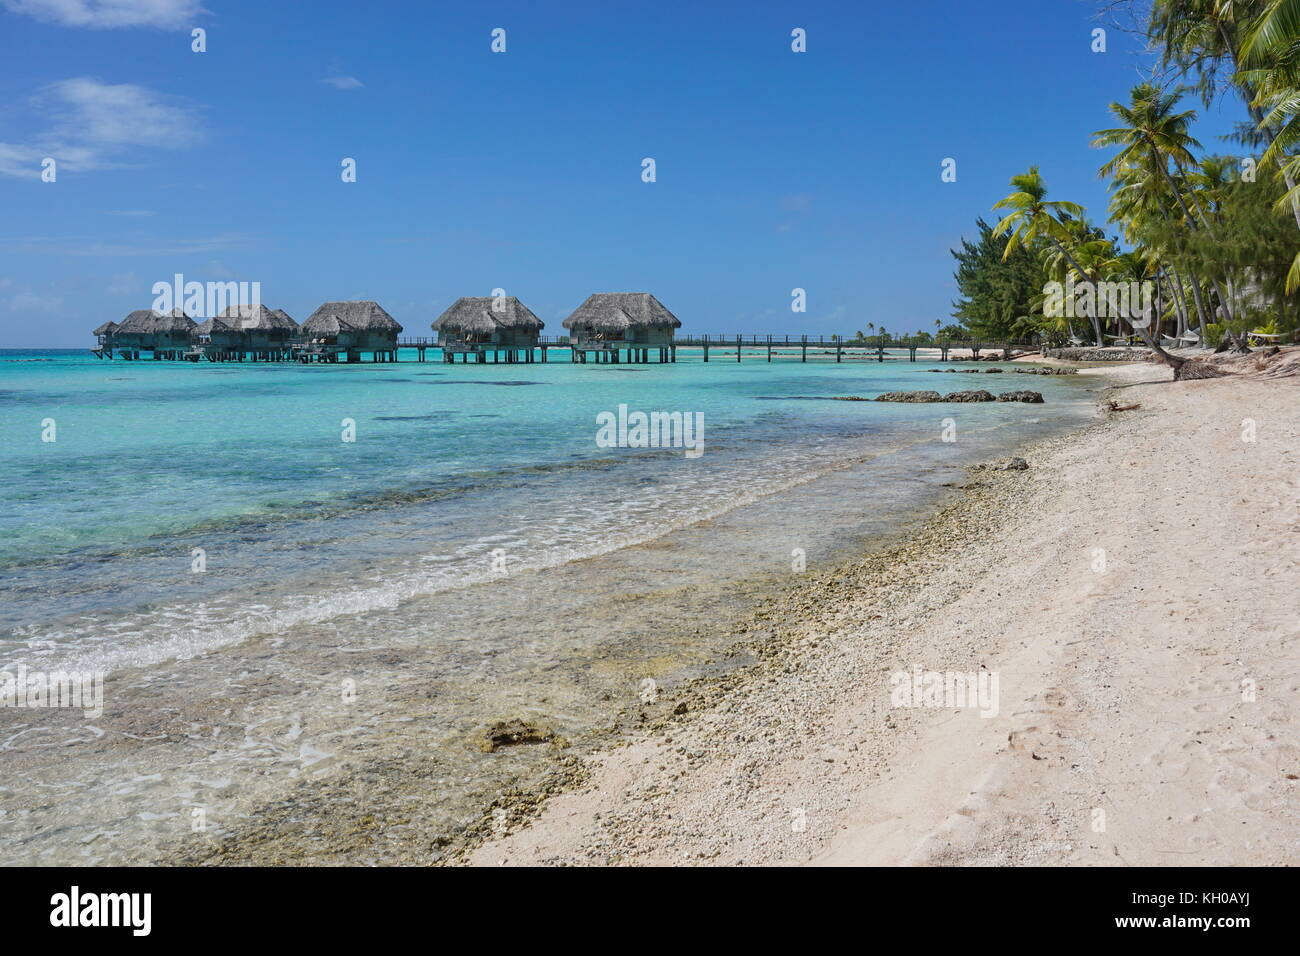 Tropical sea shore with bungalows over the water in the lagoon, Tikehau atoll, Tuamotus, French Polynesia, south - Stock Image